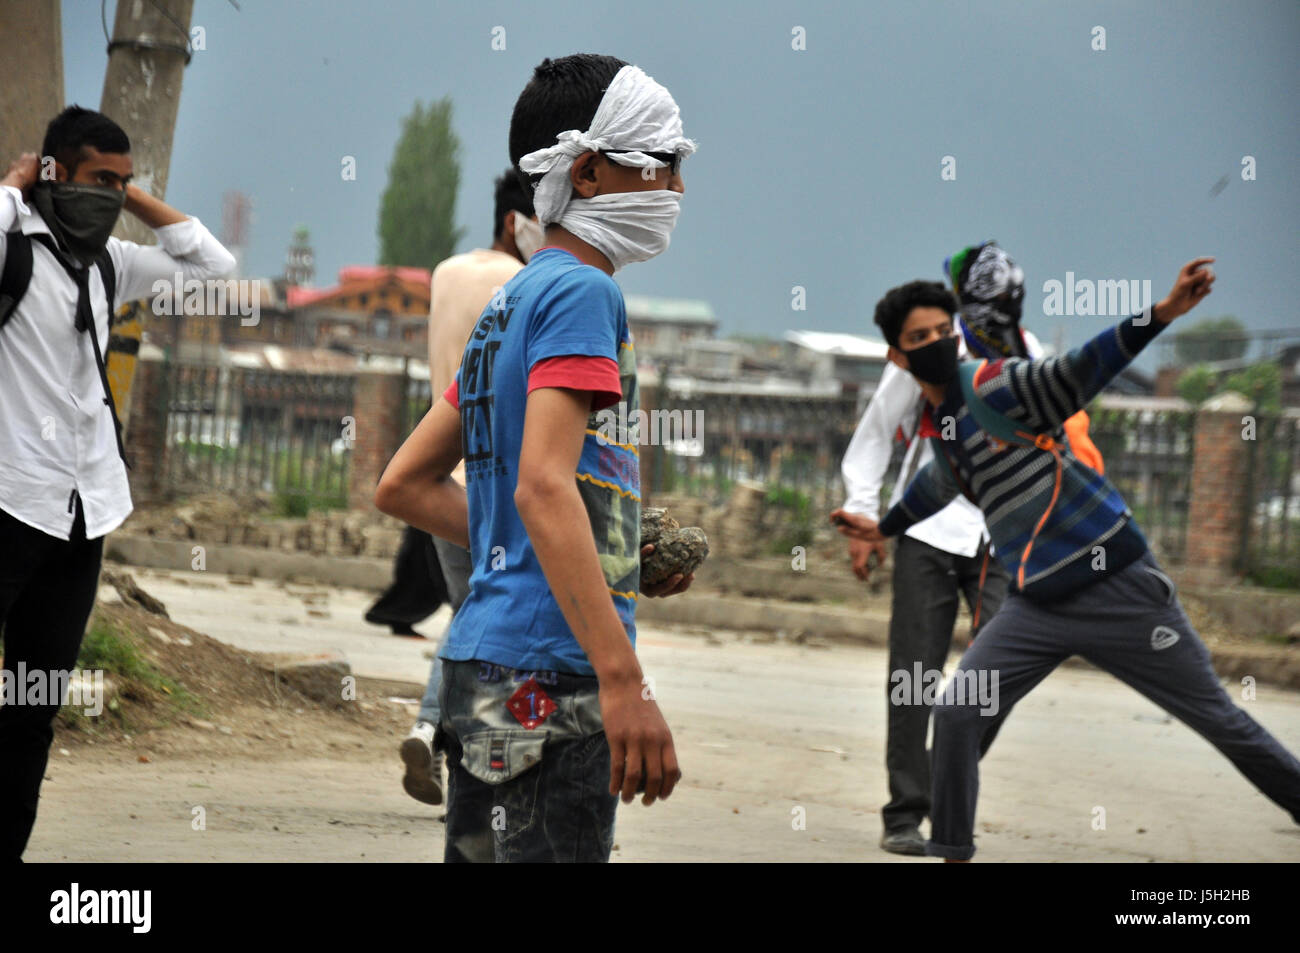 A young kashmiri boy holding stones during clashes at M.P school srinagar on May-17-2017. - Stock Image